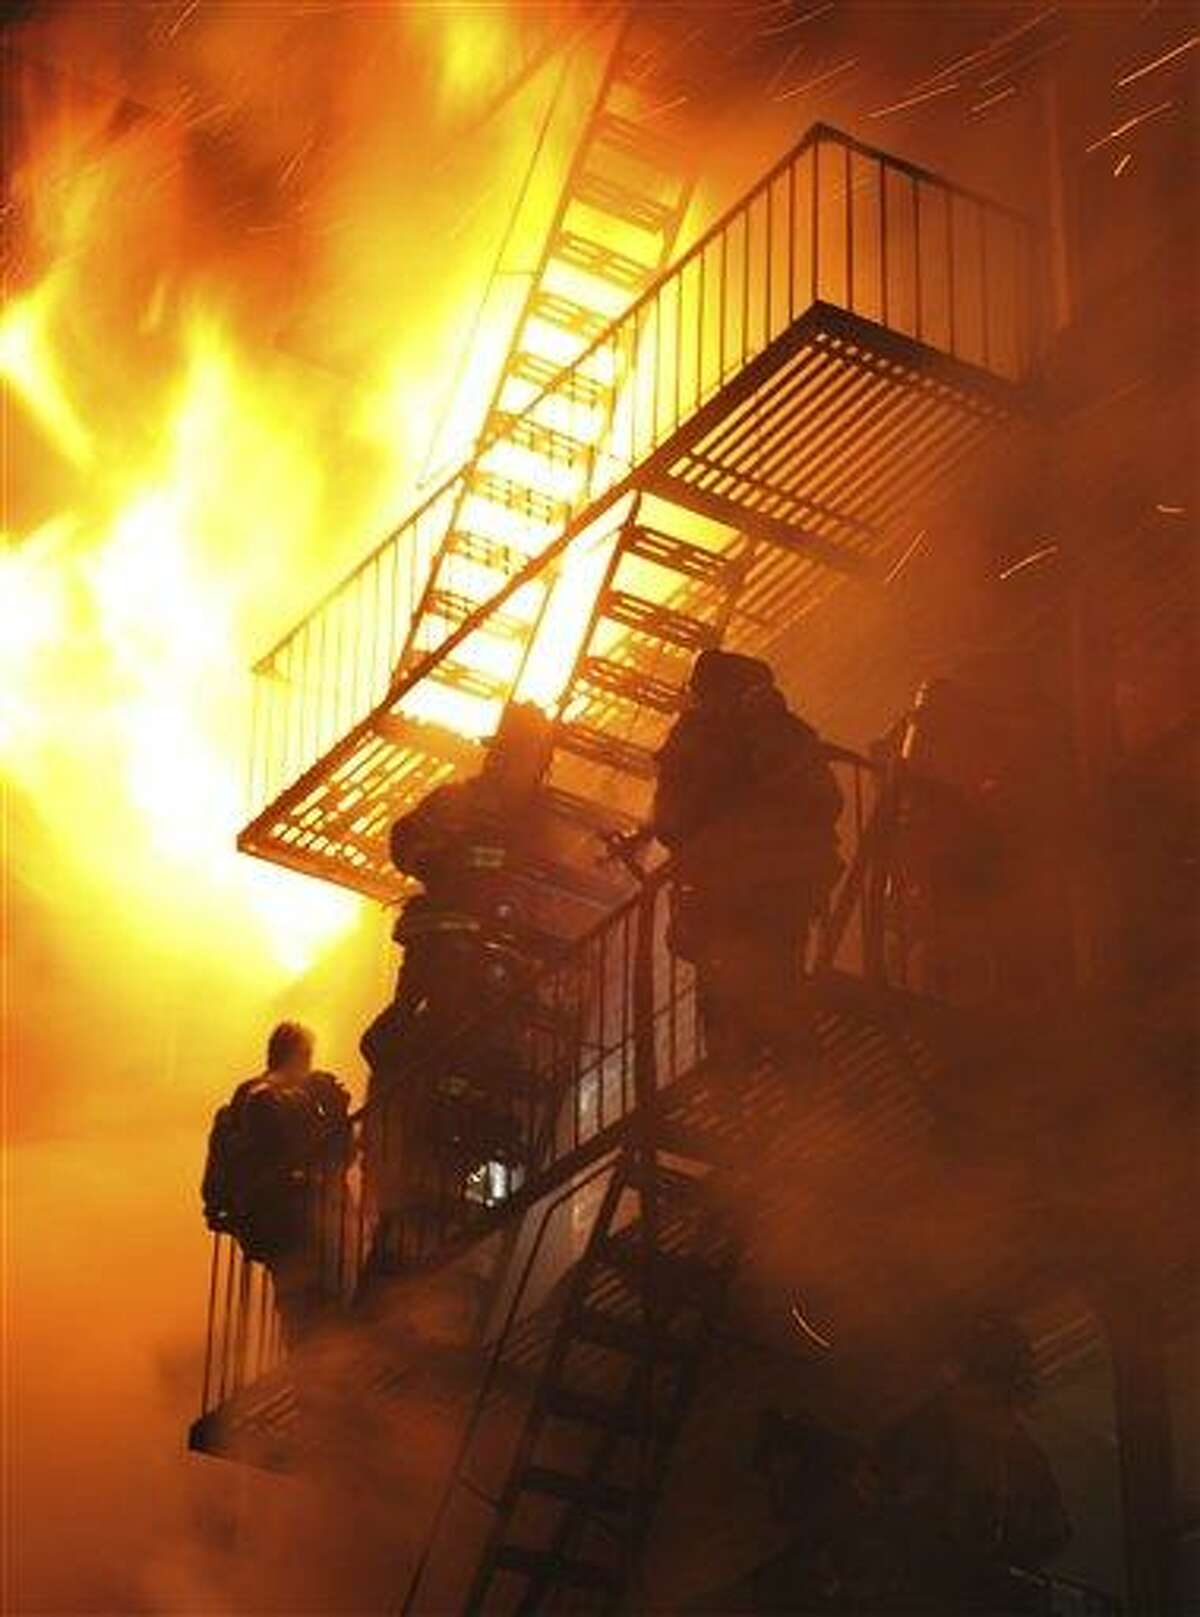 Firefighters stand on the fire escape as winds whip the flames from a five-alarm fire in the Brooklyn borough of New York late Saturday Feb. 19, 2011. Strong winds have meant several hours of work for hundreds of New York City firefighters trying to extinguish a fire that ripped through a six-story apartment building. A fire department spokesman says at least 20 firefighters have been injured while battling Saturday's (AP Photo/Paul Martinka)